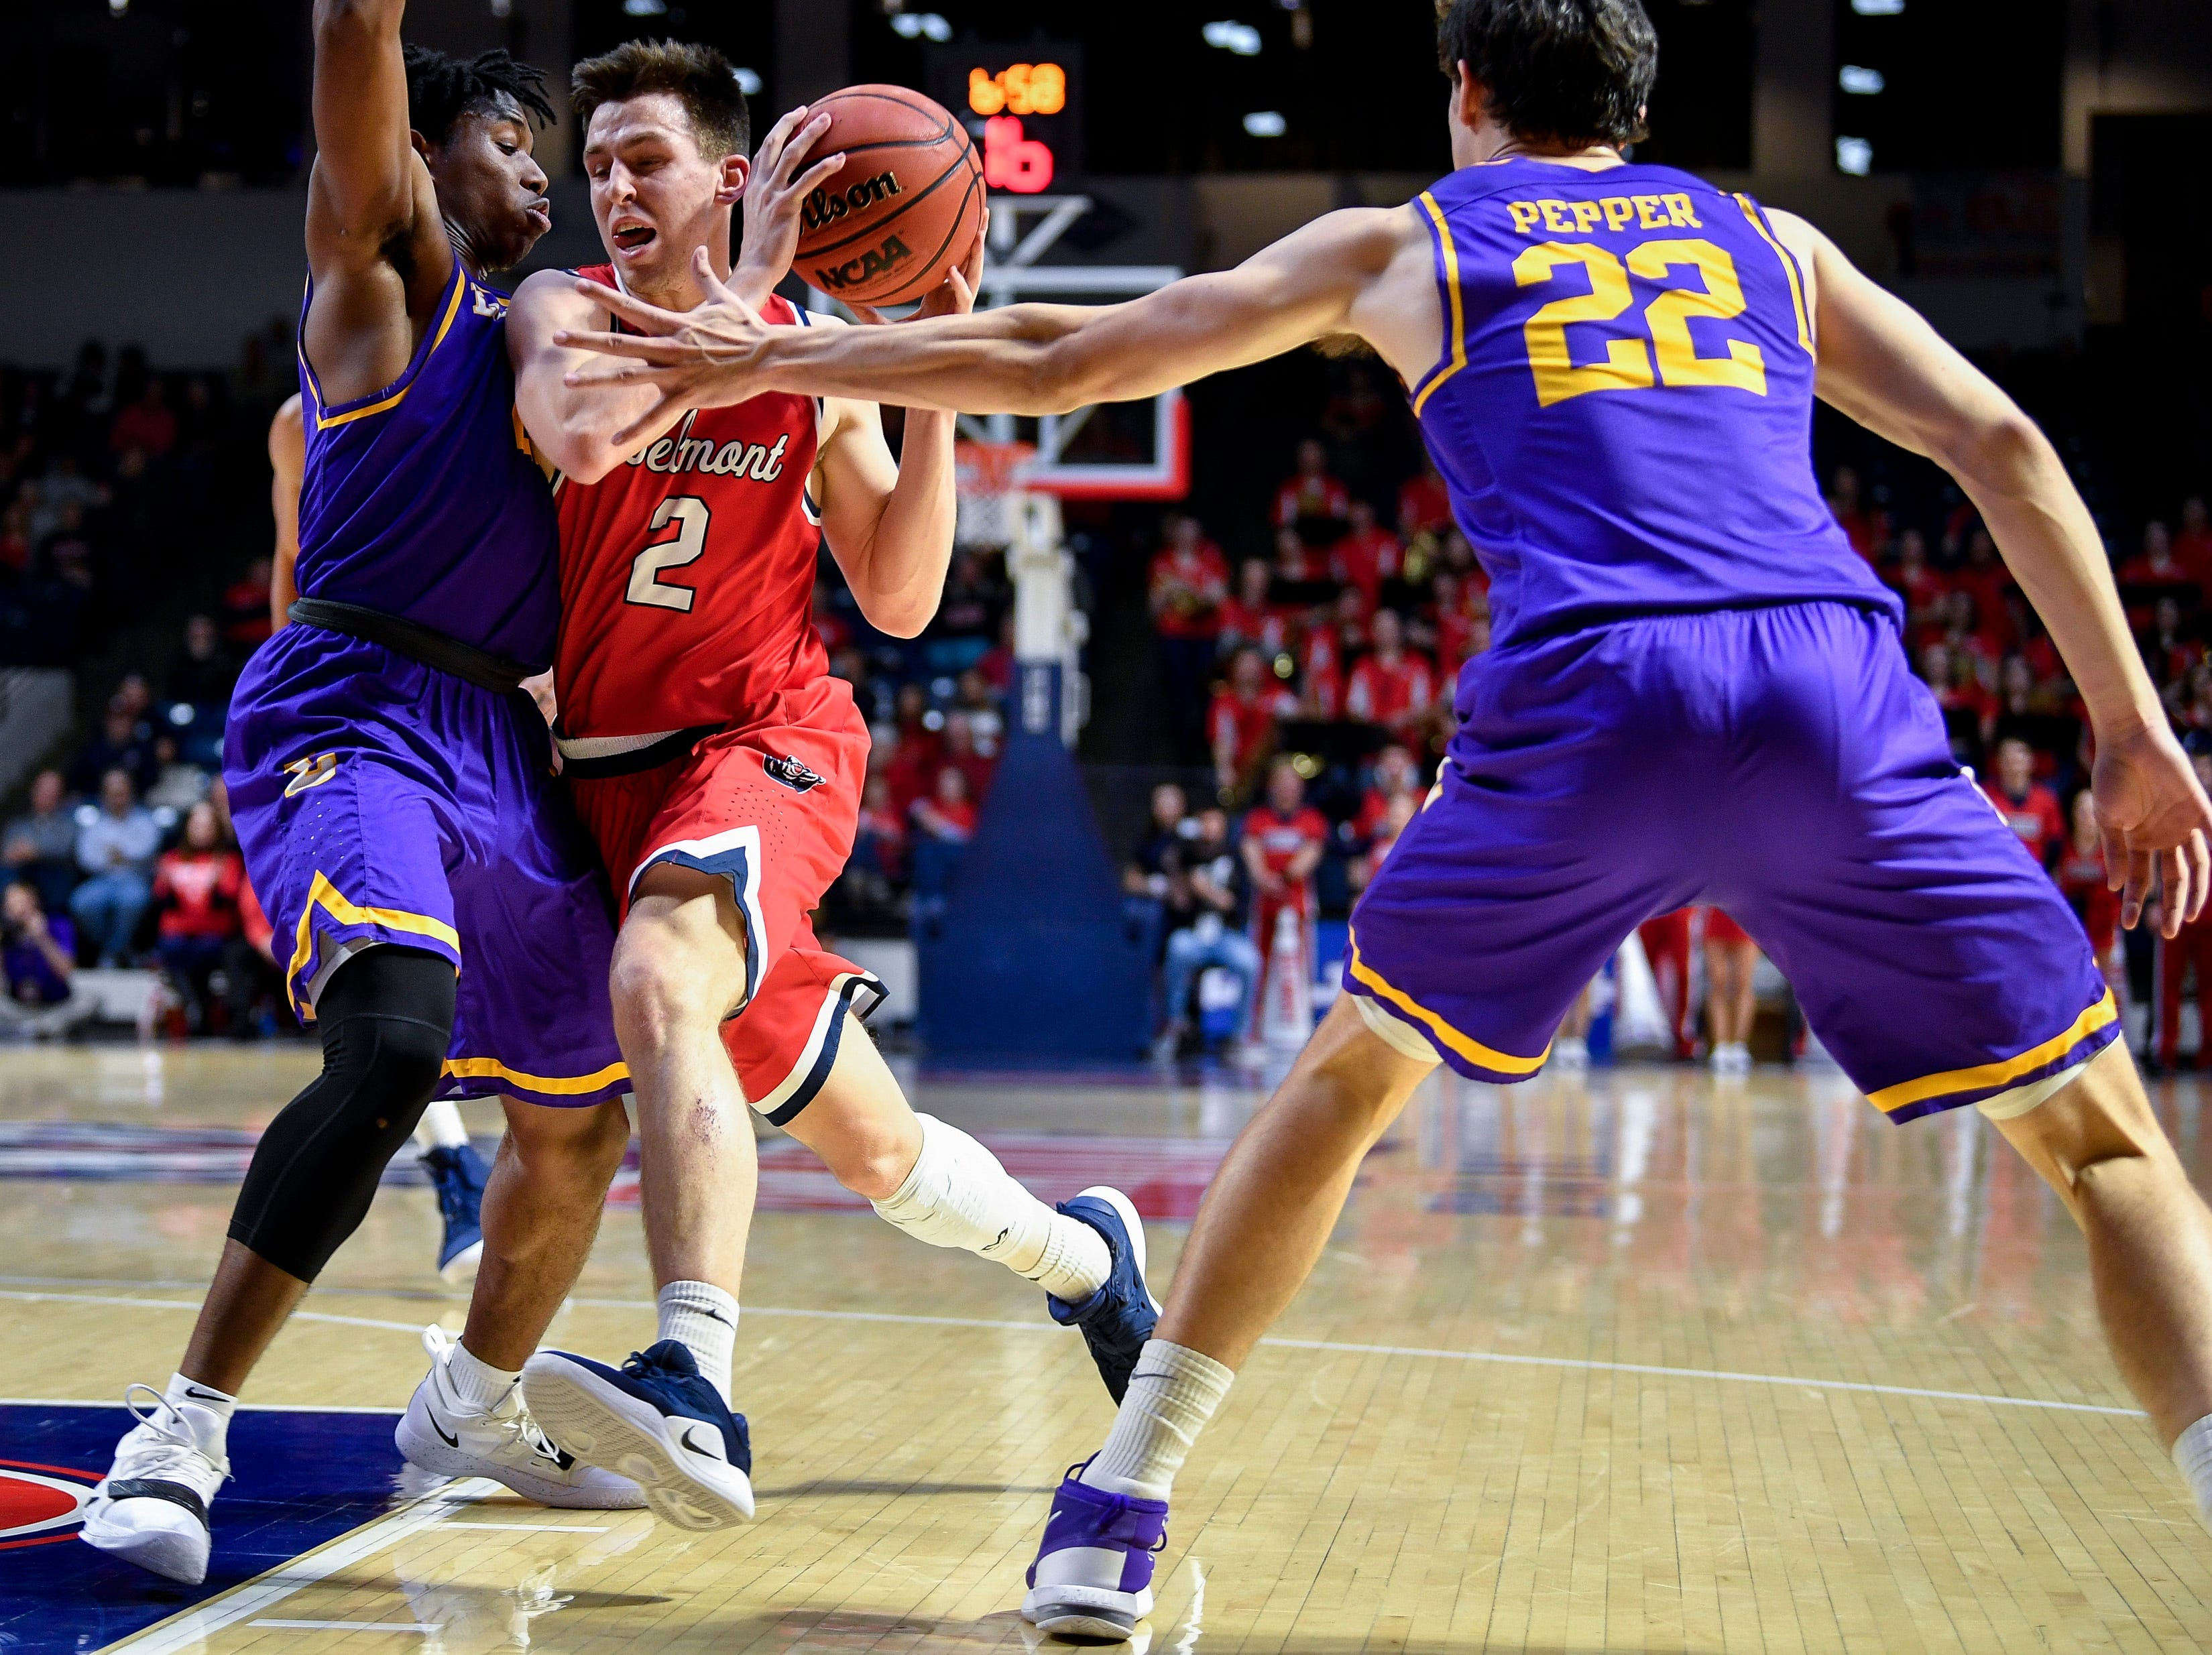 Belmont guard Grayson Murphy (2) advances against Lipscomb guard Kenny Cooper (21) and forward Eli Pepper (22) during the first half at the Curb Event Center in Nashville, Tenn., Tuesday, Dec. 4, 2018.